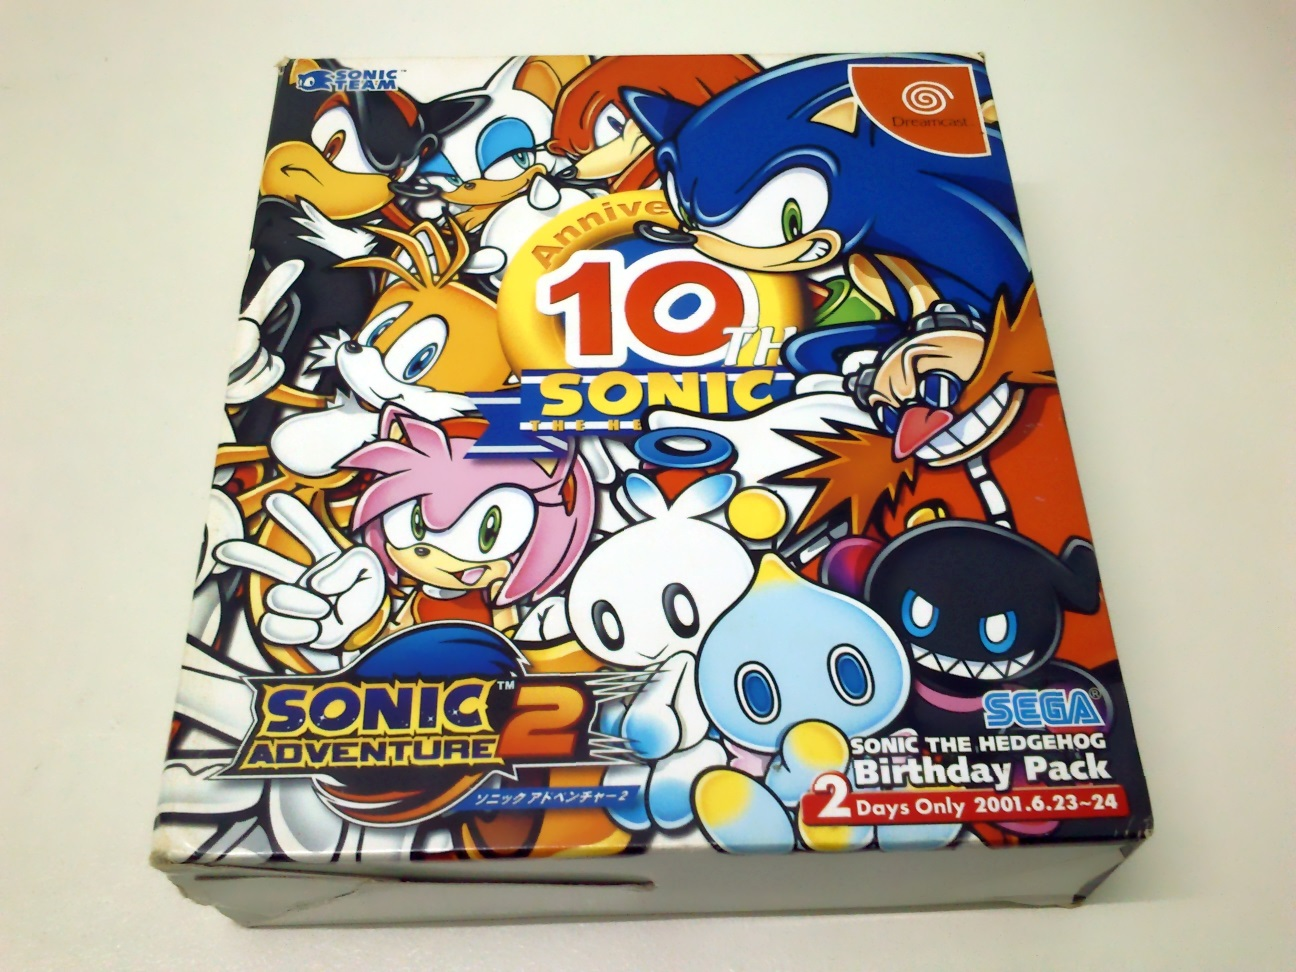 Sonic Adventure 2 Birthday Pack - Collectibles - Sonic Notes-4257